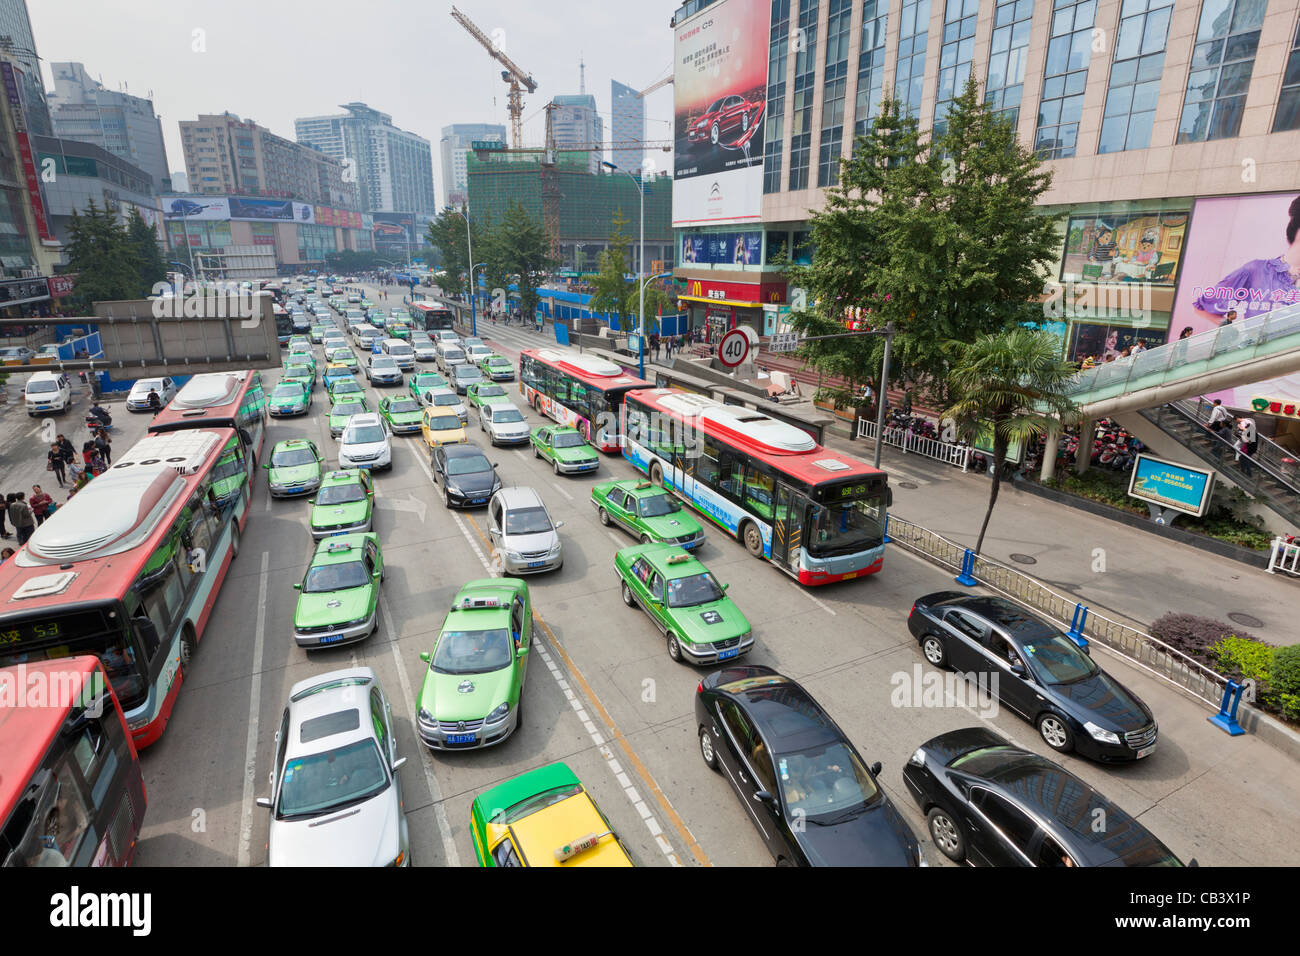 traffic jam congestion in Chengdu city centre center Sichuan province PRC, People's Republic of China, Asia - Stock Image